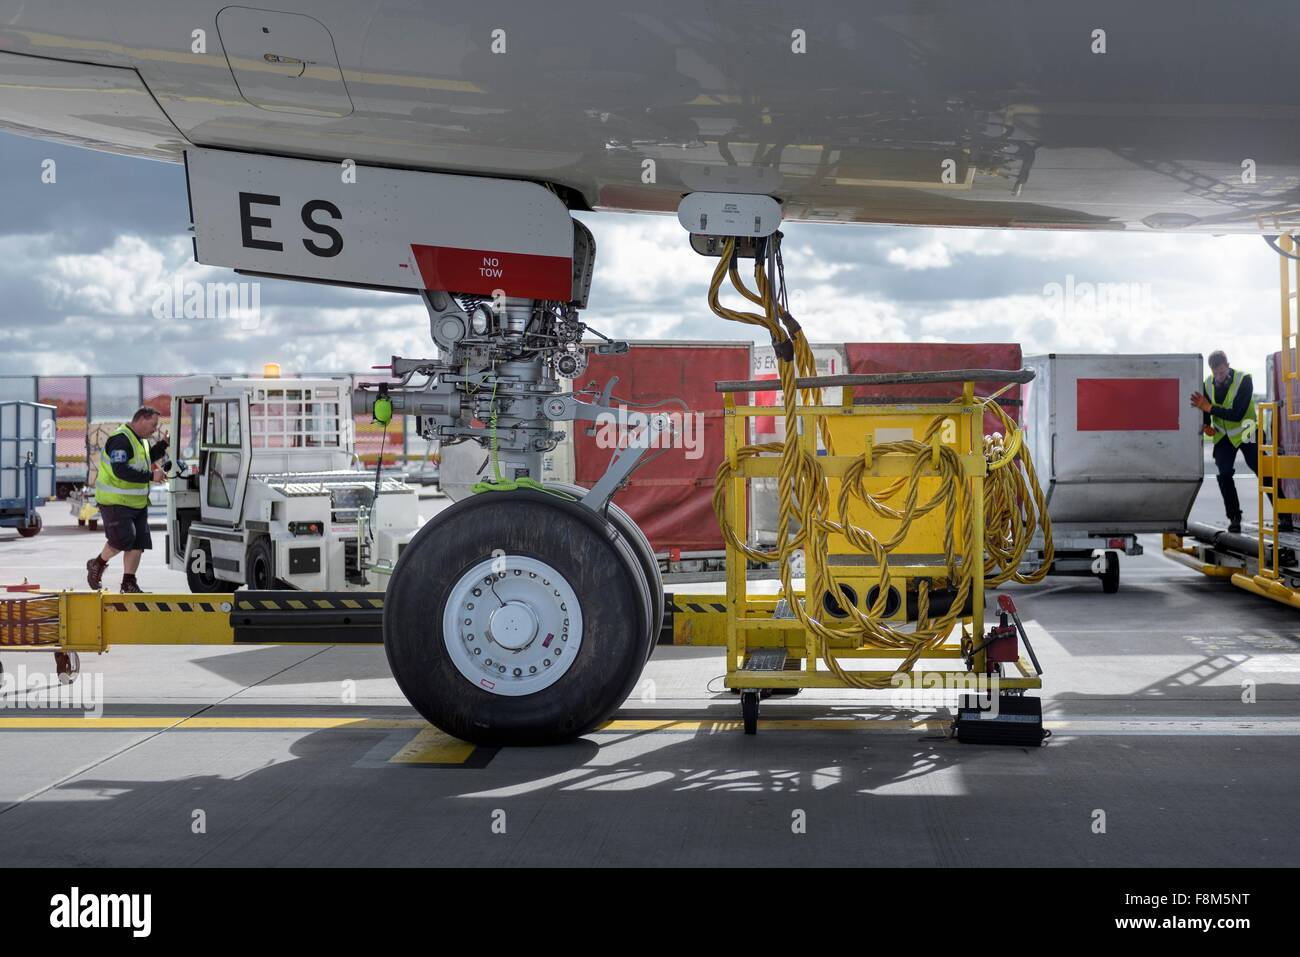 Ground crew loading luggage into A380 aircraft - Stock Image